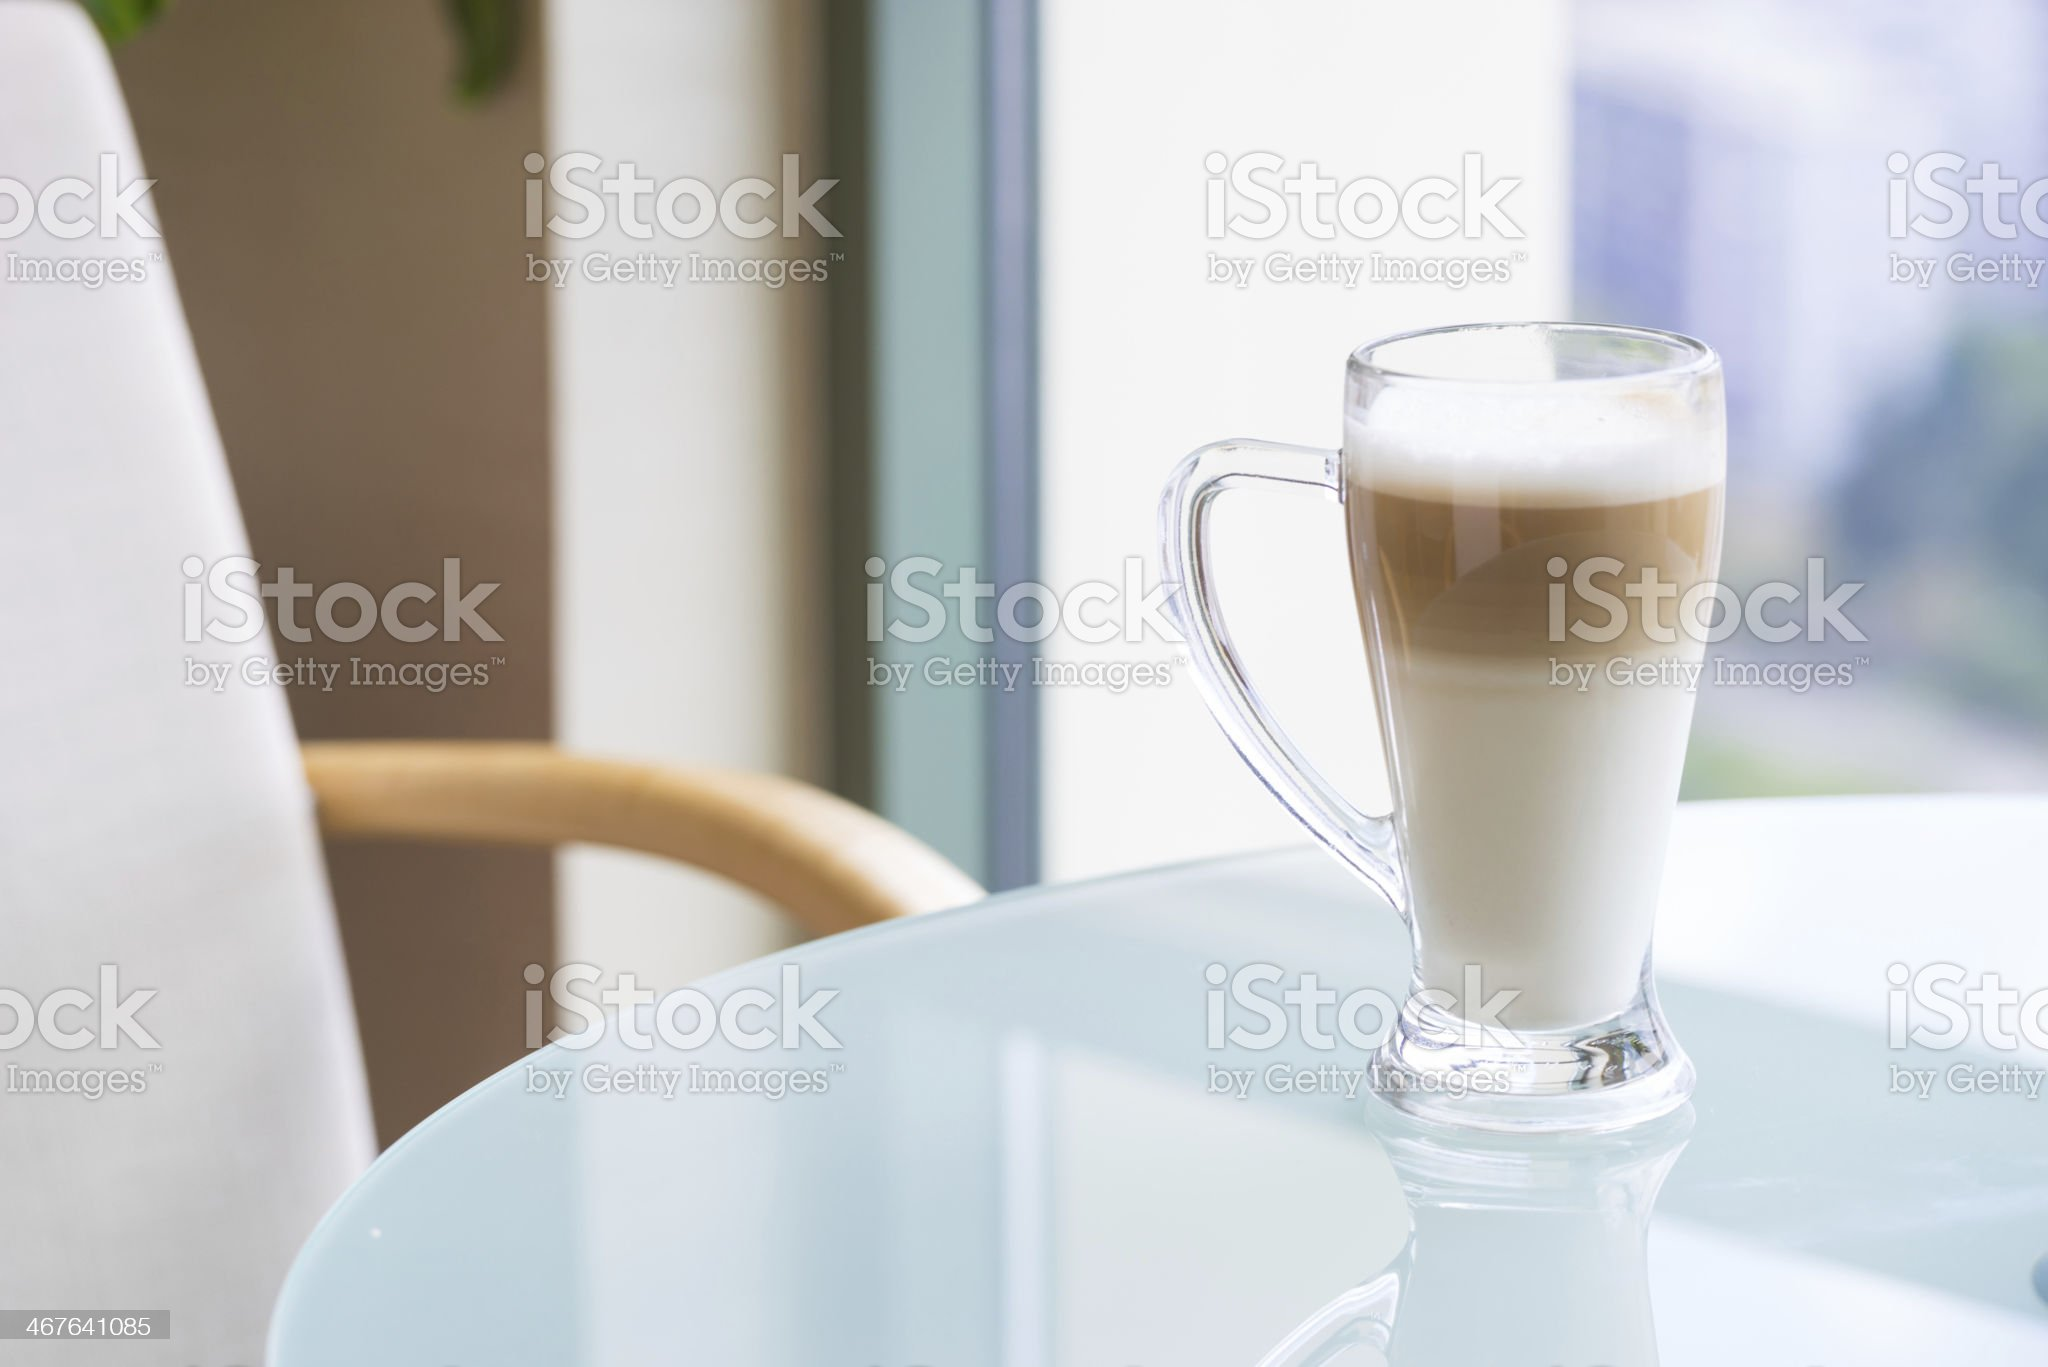 Coffee Latte Cappuccino in a tall glass royalty-free stock photo